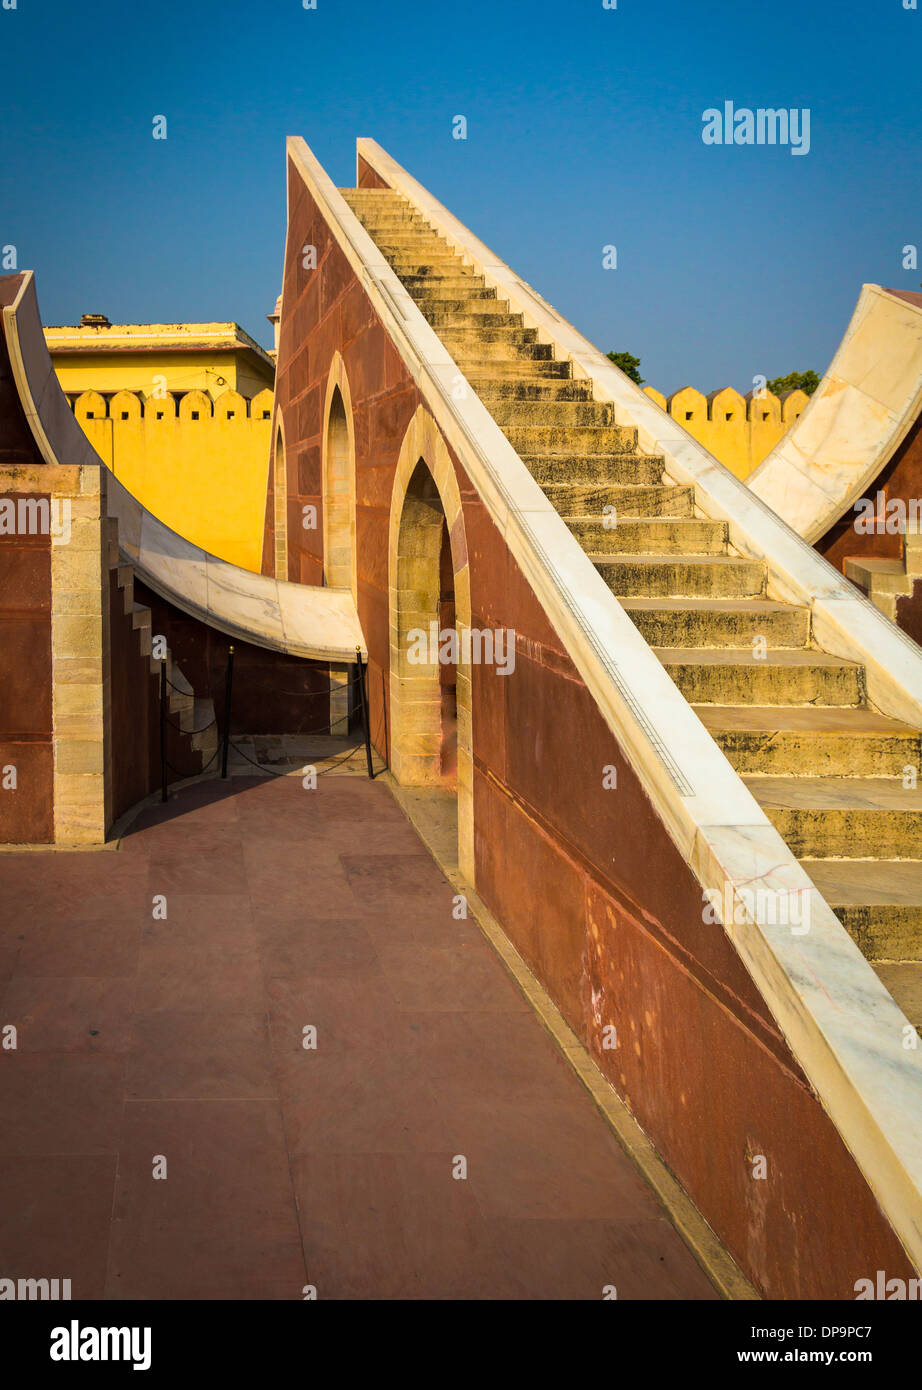 The Jantar Mantar is a collection of architectural astronomical instruments in Jaipur, India - Stock Image